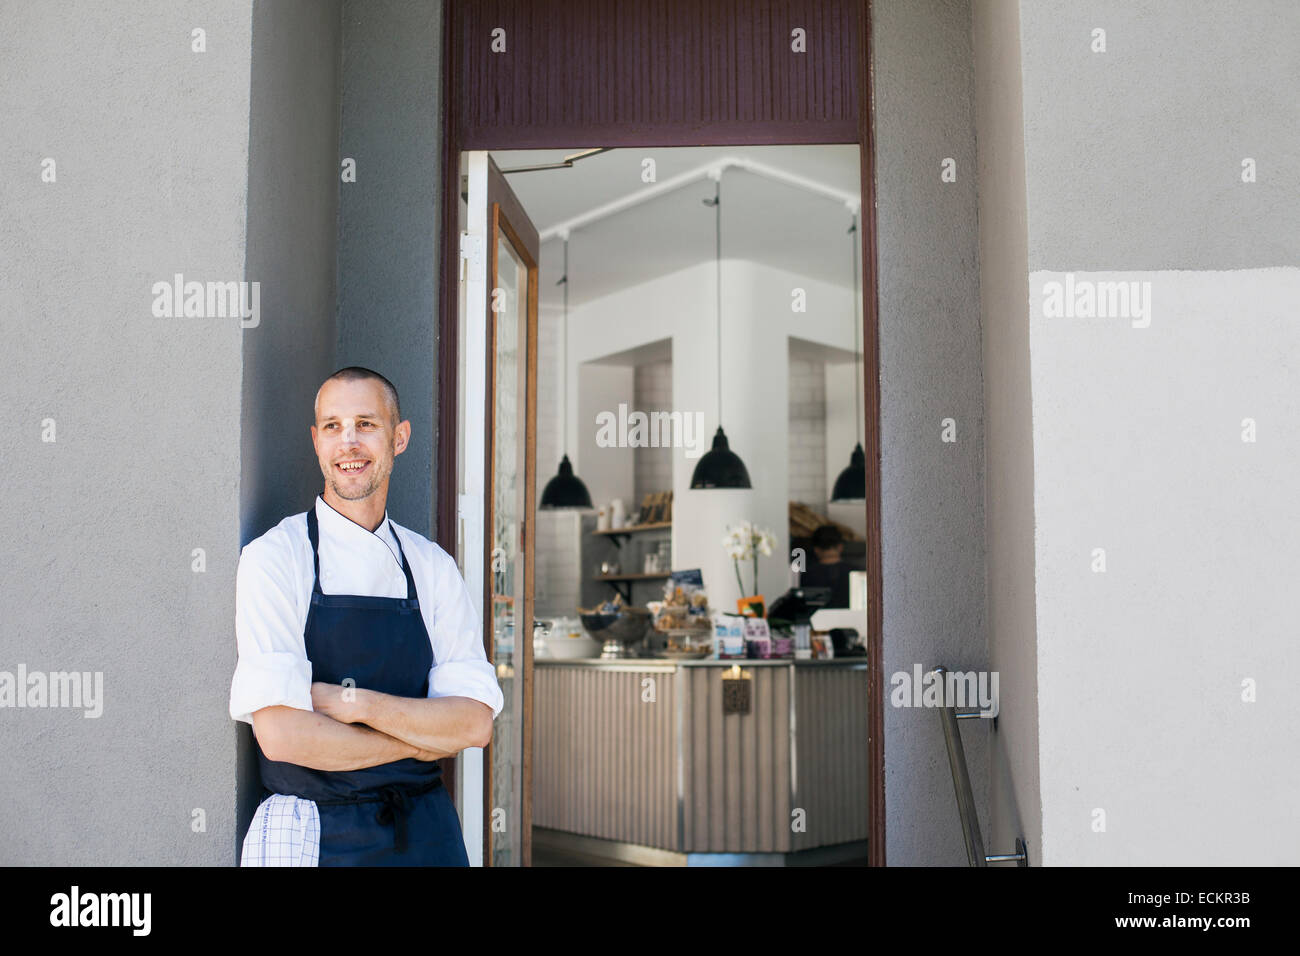 Smiling chef standing arms crossed extérieur cuisine commerciale Photo Stock